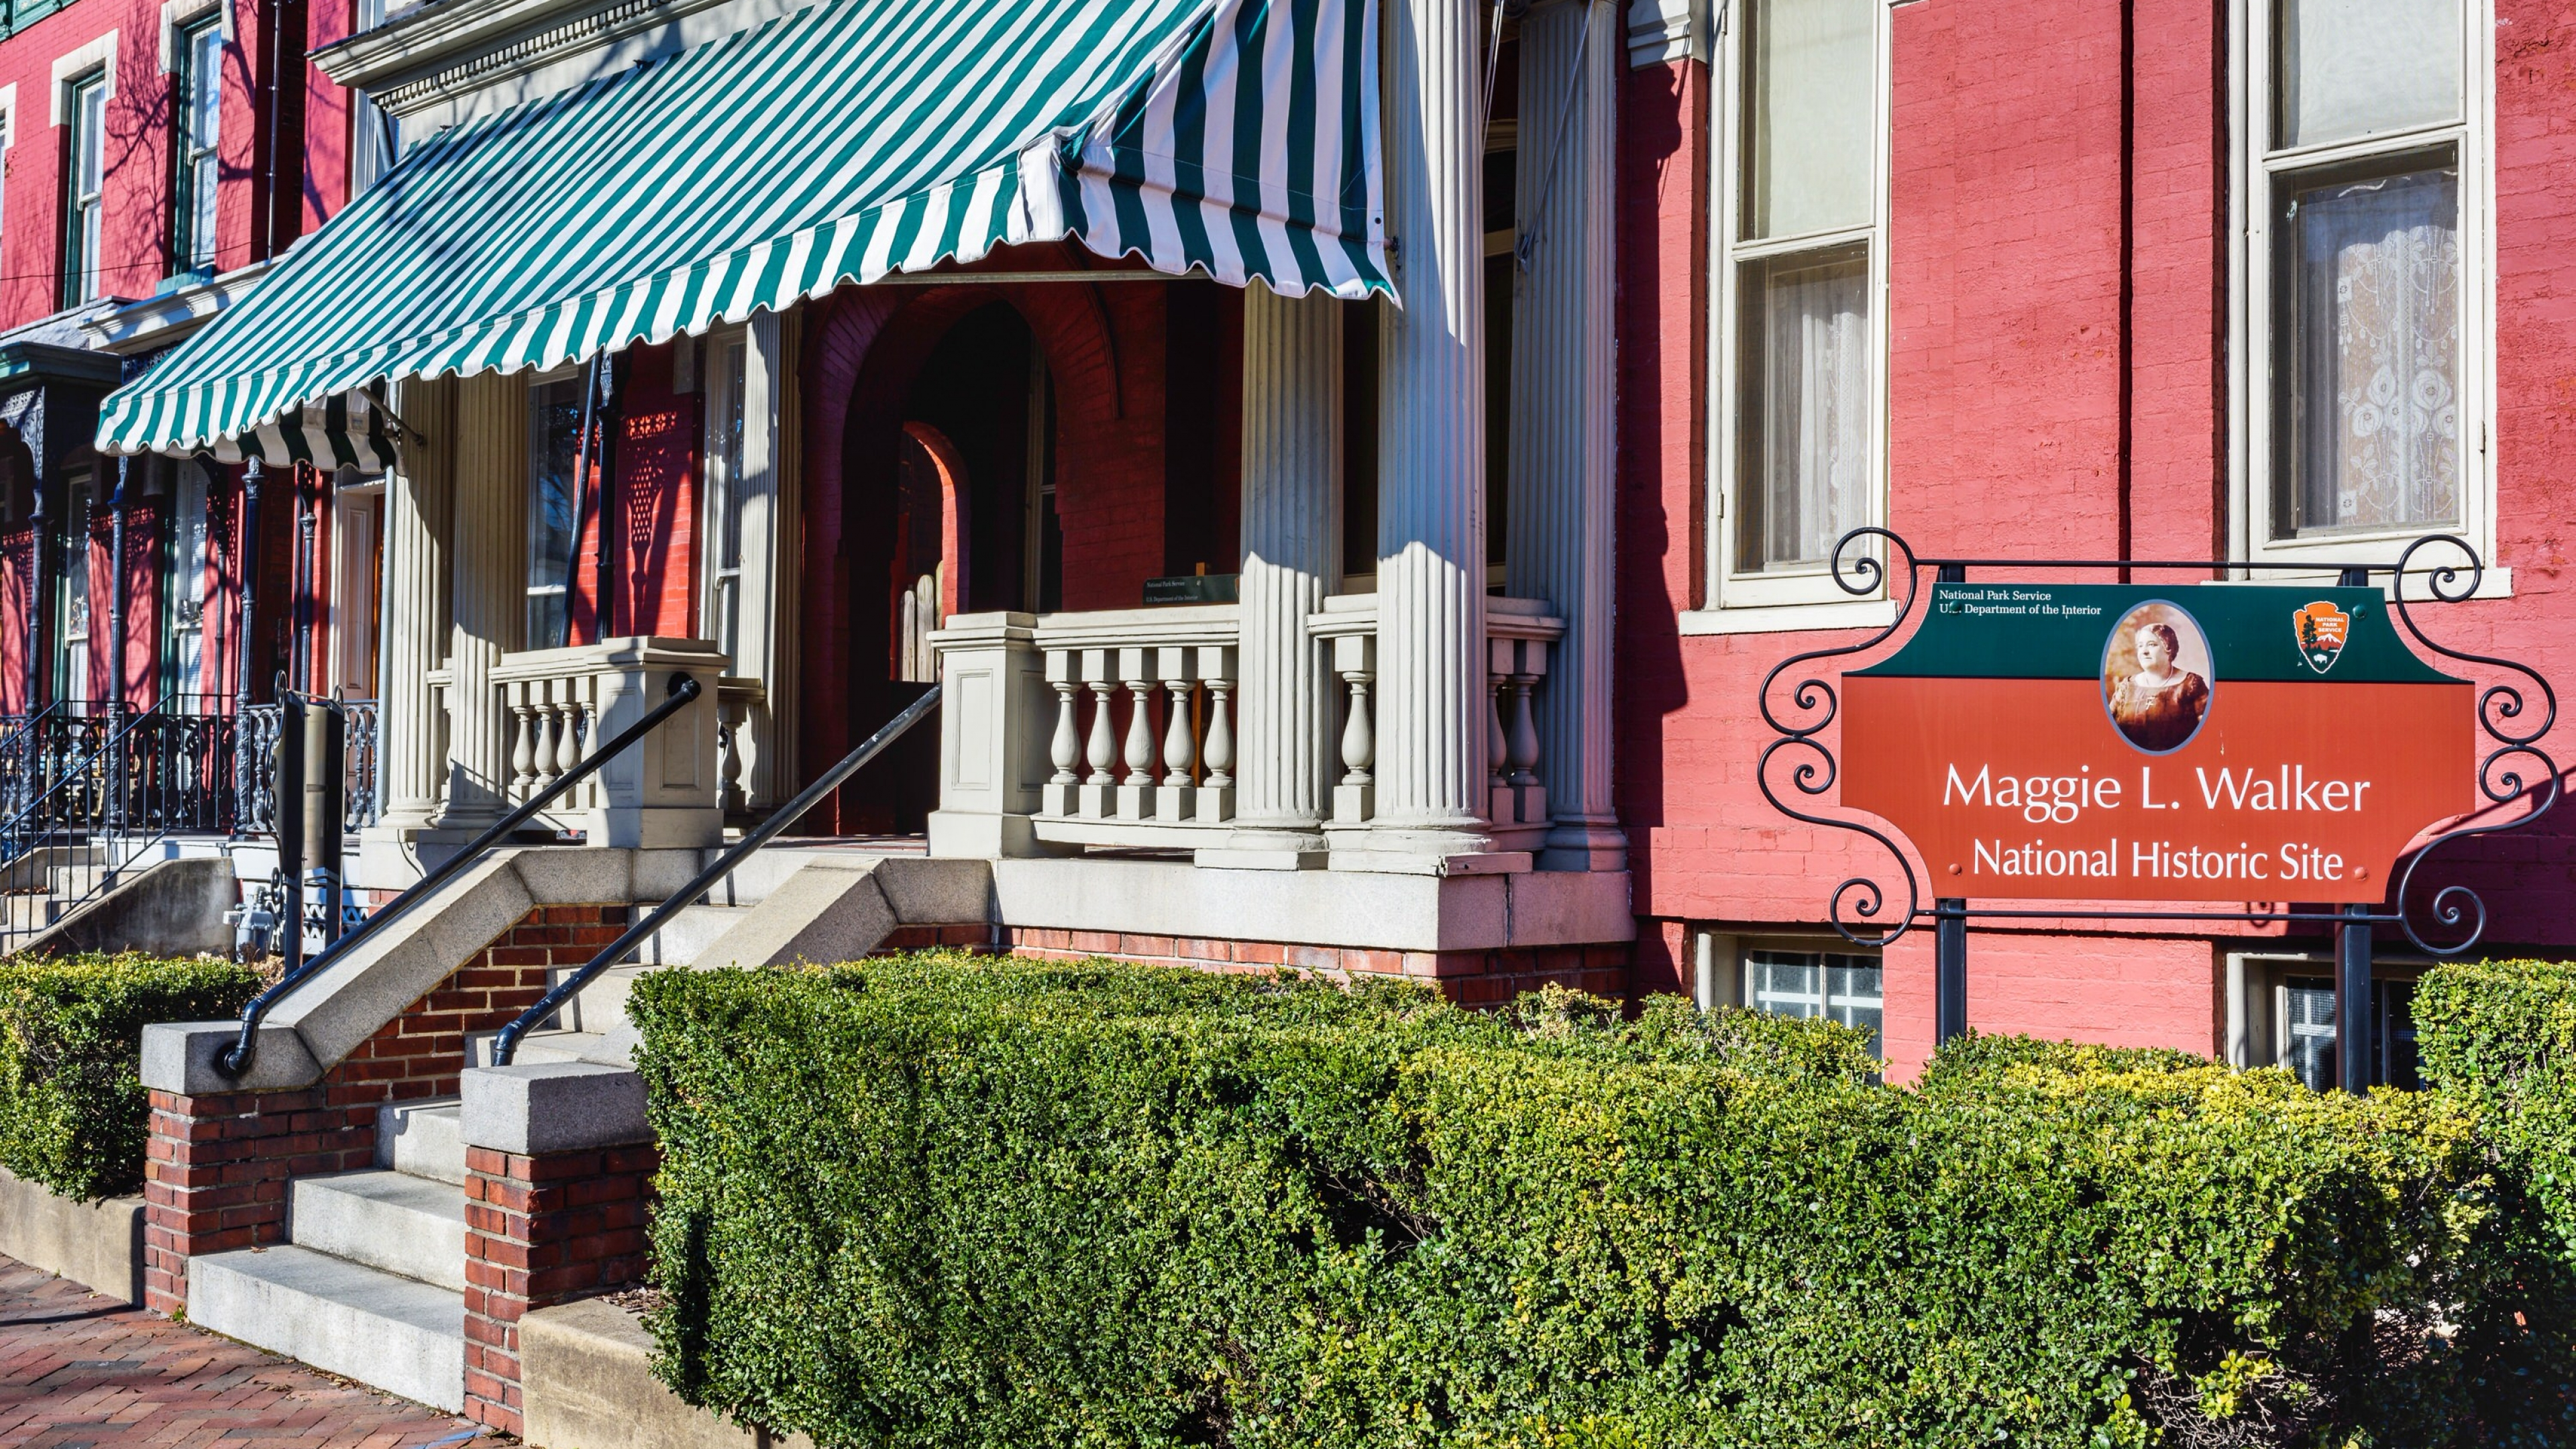 A view, from the sidewalk, of the striped awning hanging over the entrance to Maggie L. Walker National Historic Site